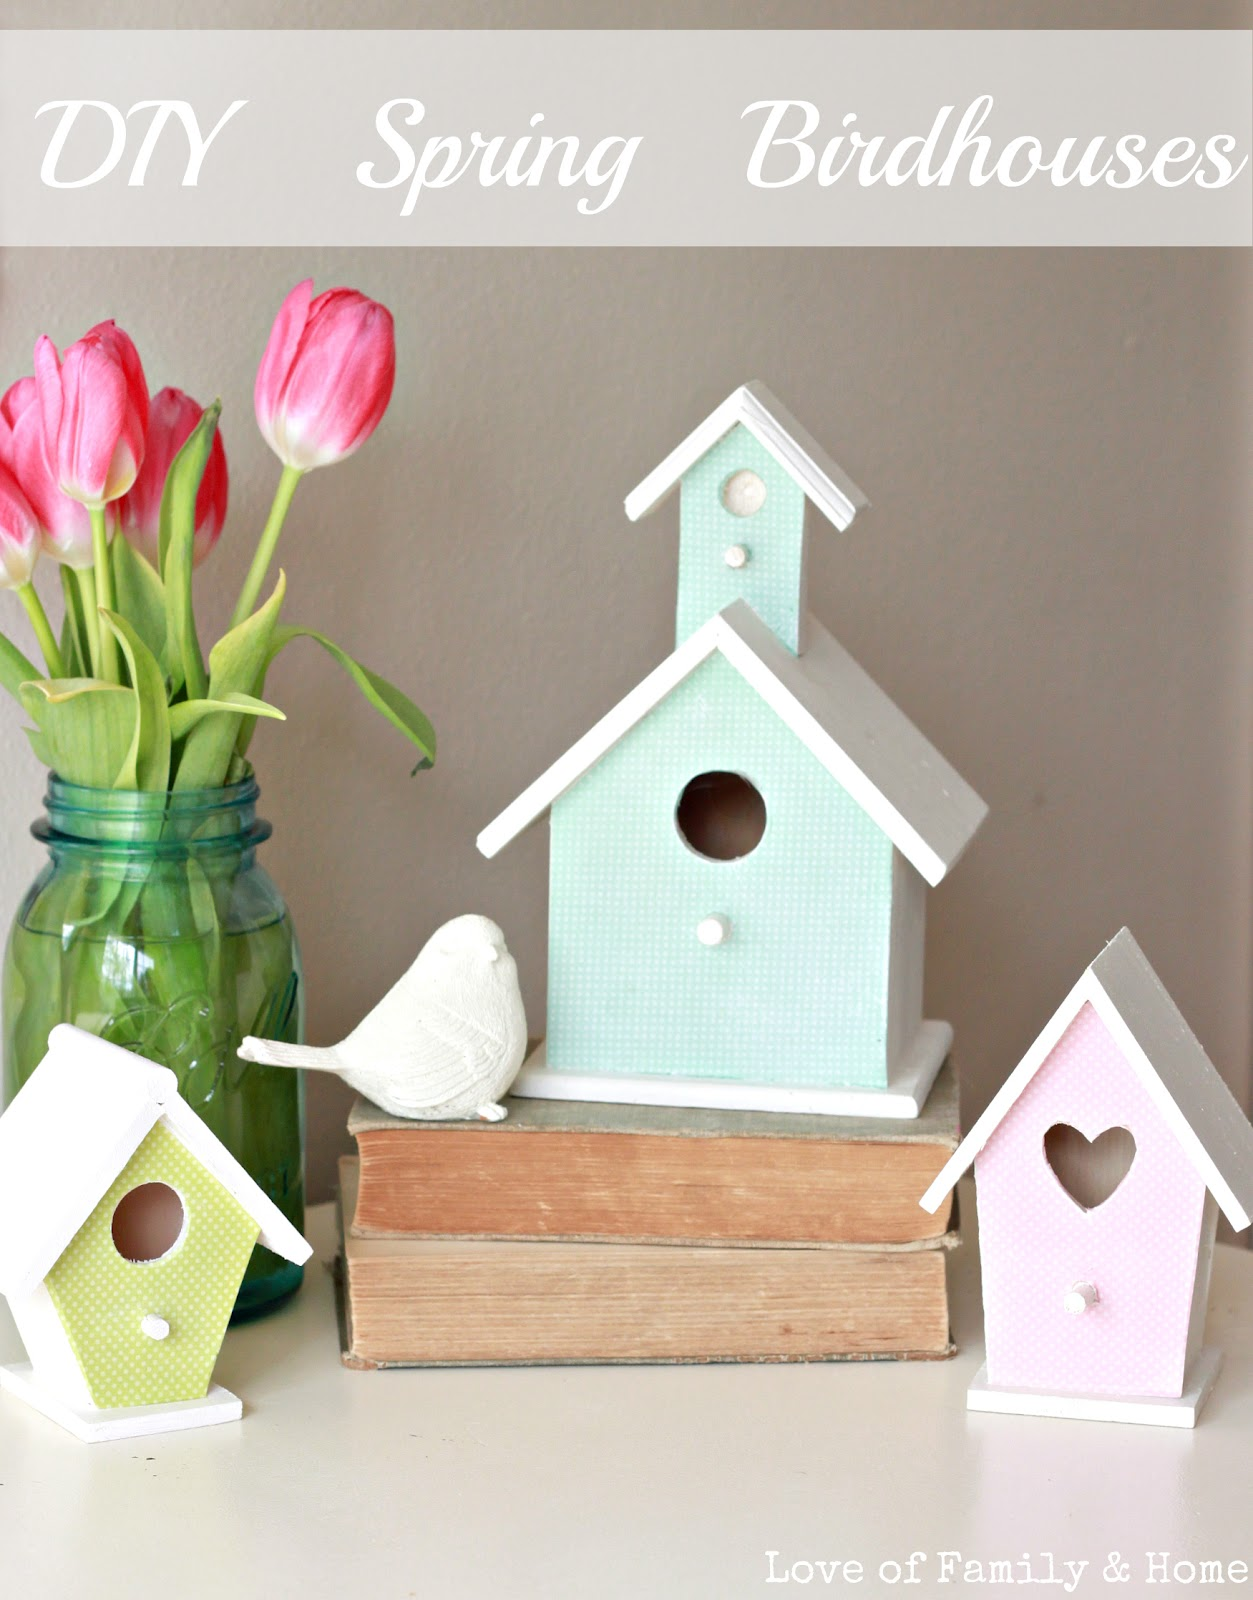 Love Of Family & Home: DIY Spring Birdhouses